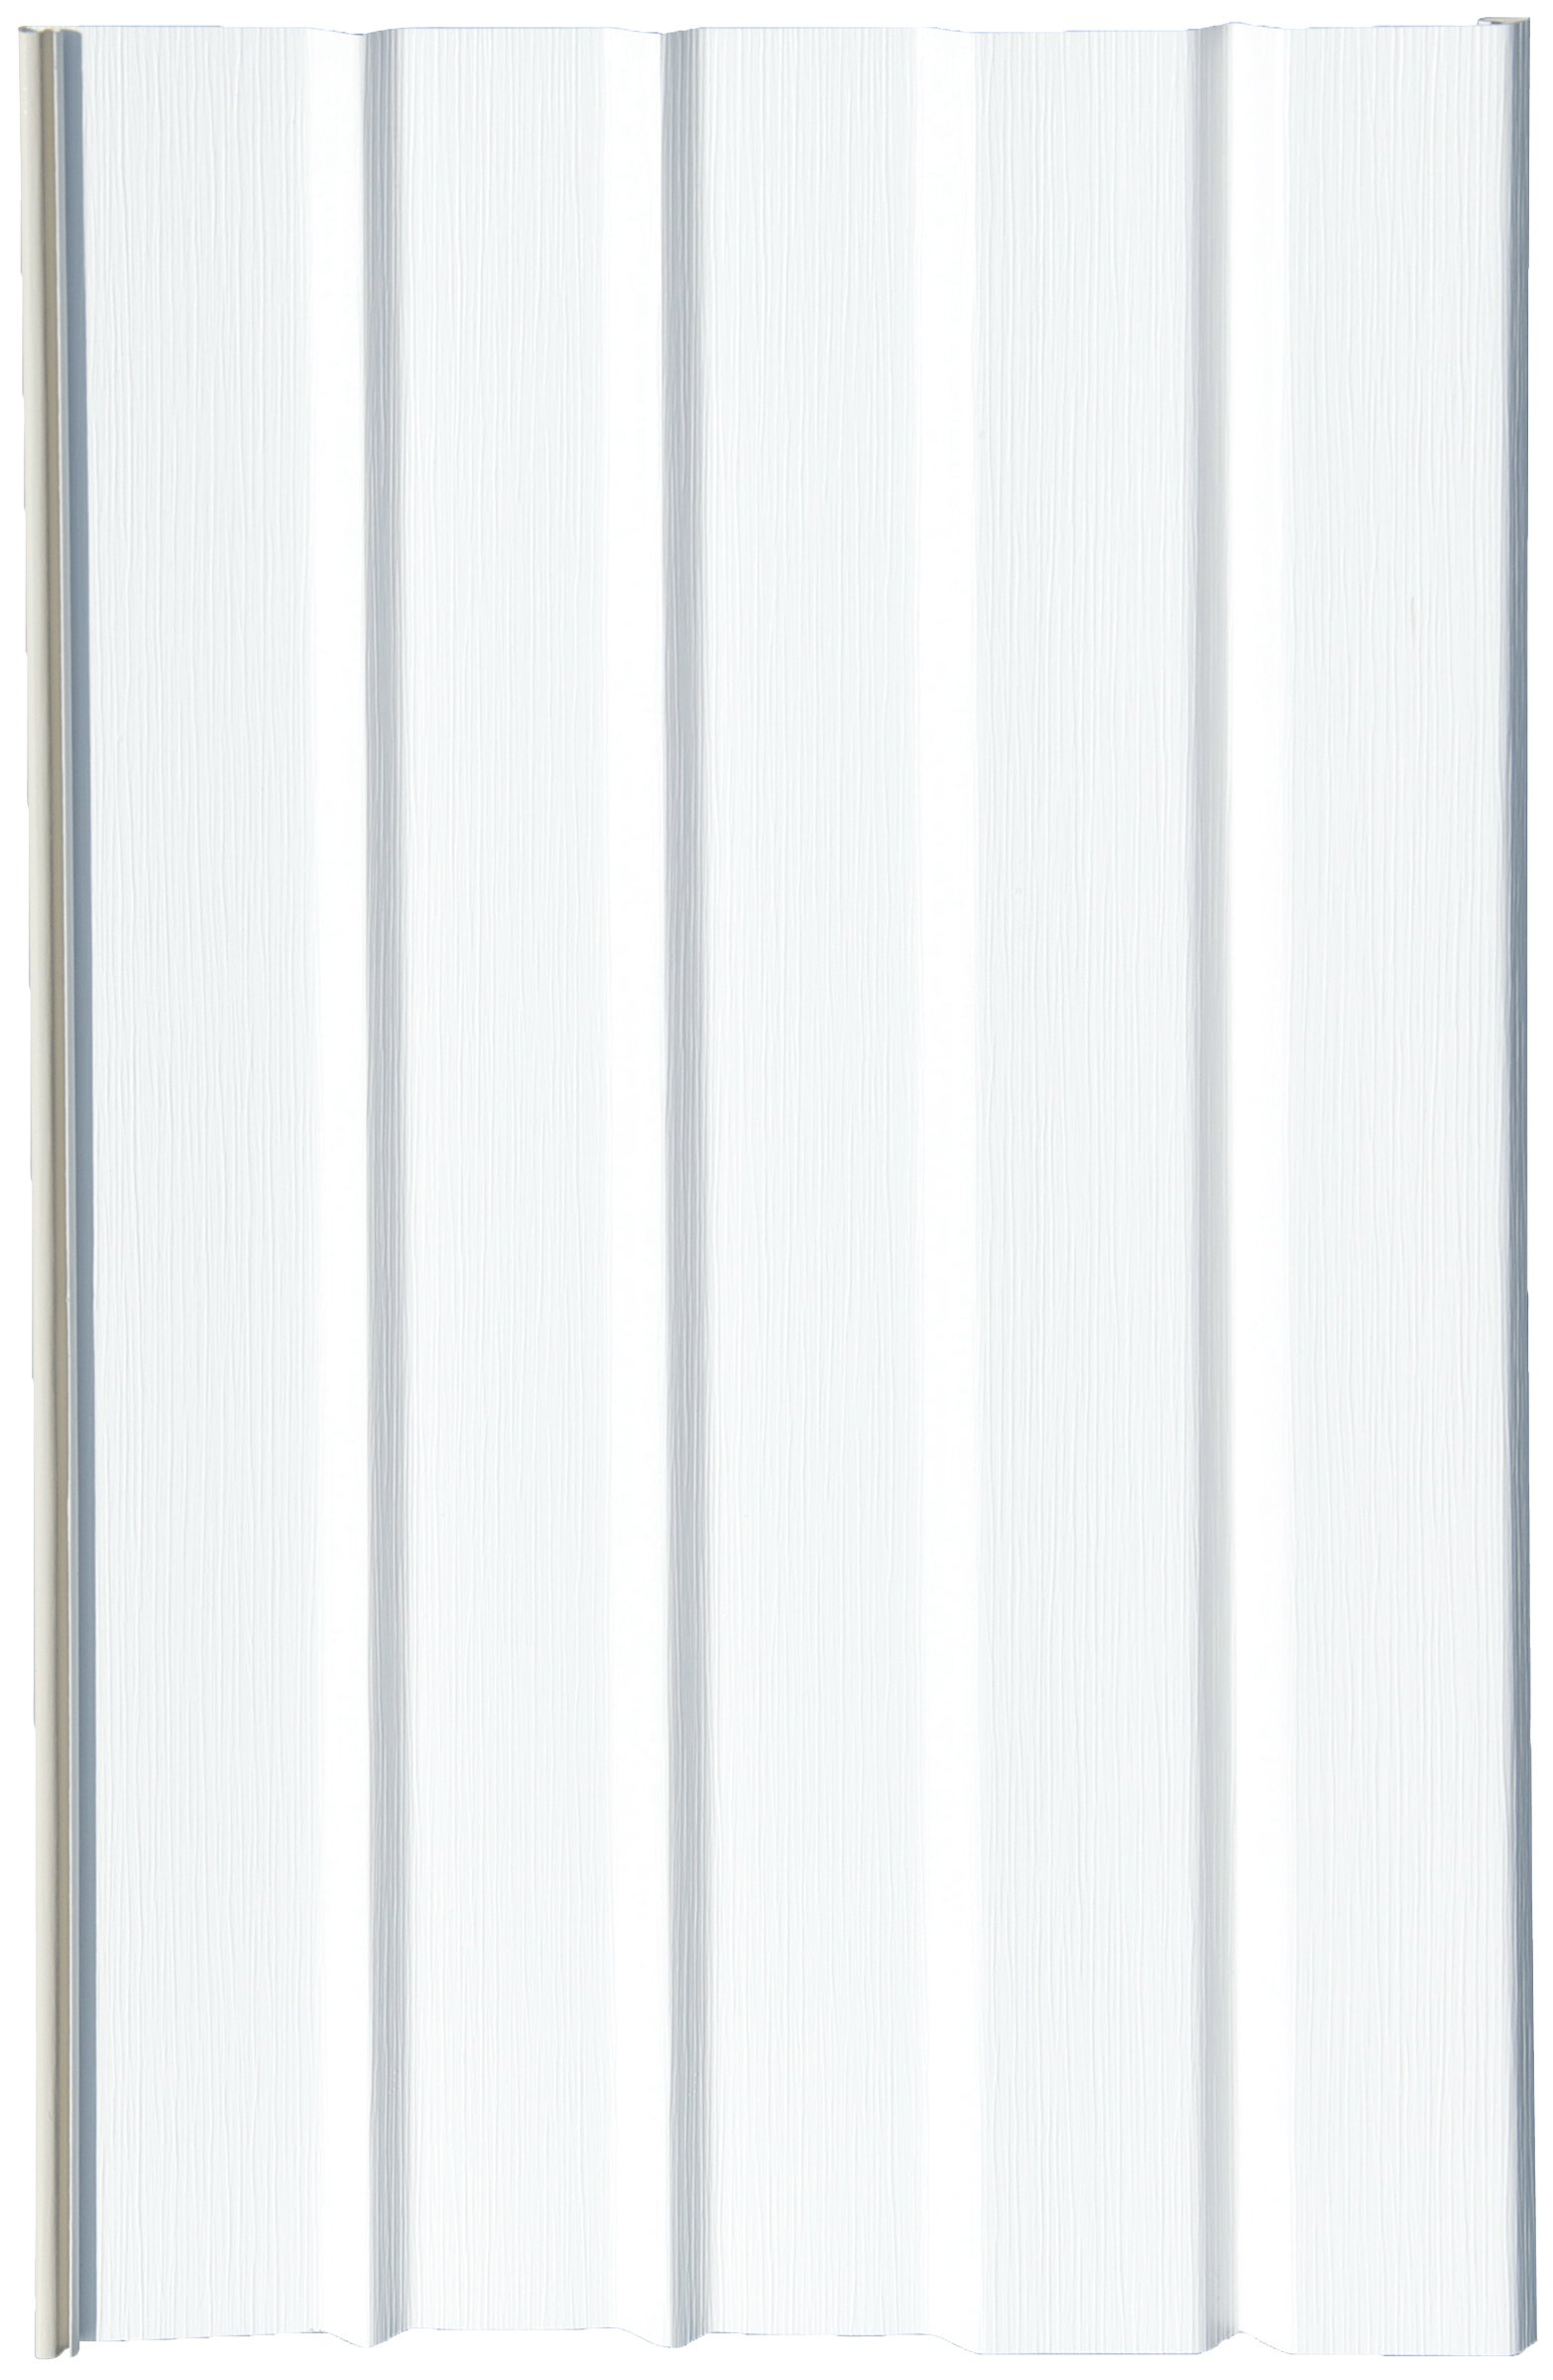 Mobile Home Skirting Vinyl Underpinning Panel WHITE 16'' W x 46'' L (Box of 8) by Mobile Home Parts